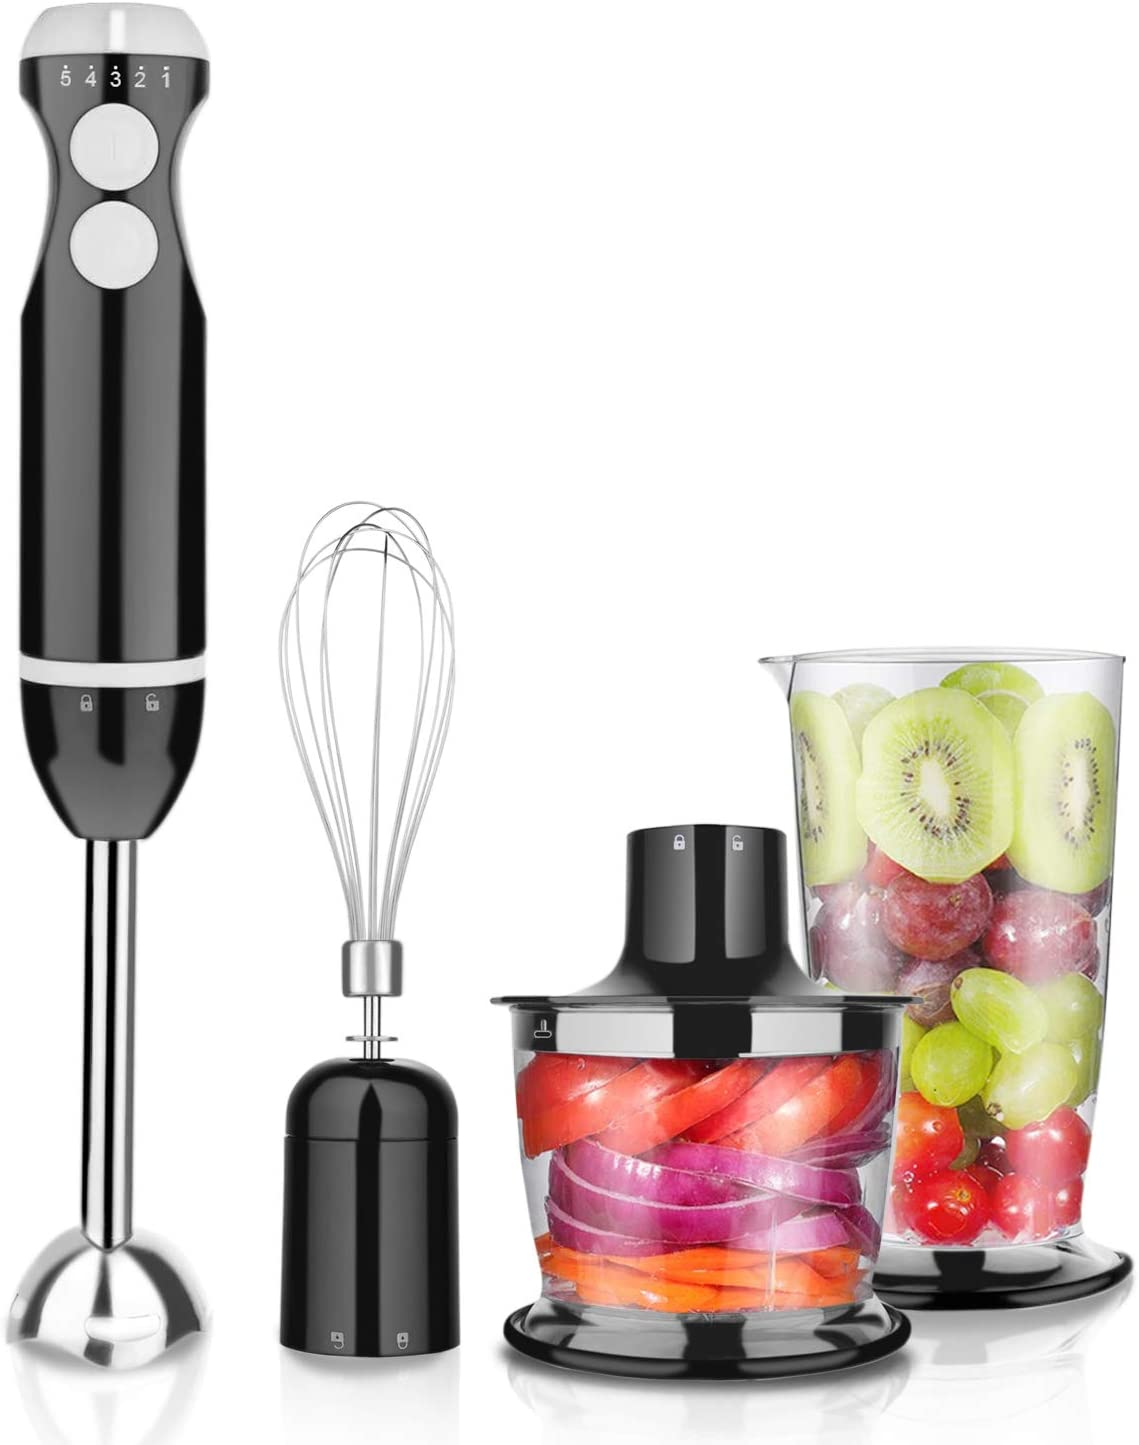 Hand Held Immersion Blender Electric Kitchen Food Mixer Stainless Steel Blades